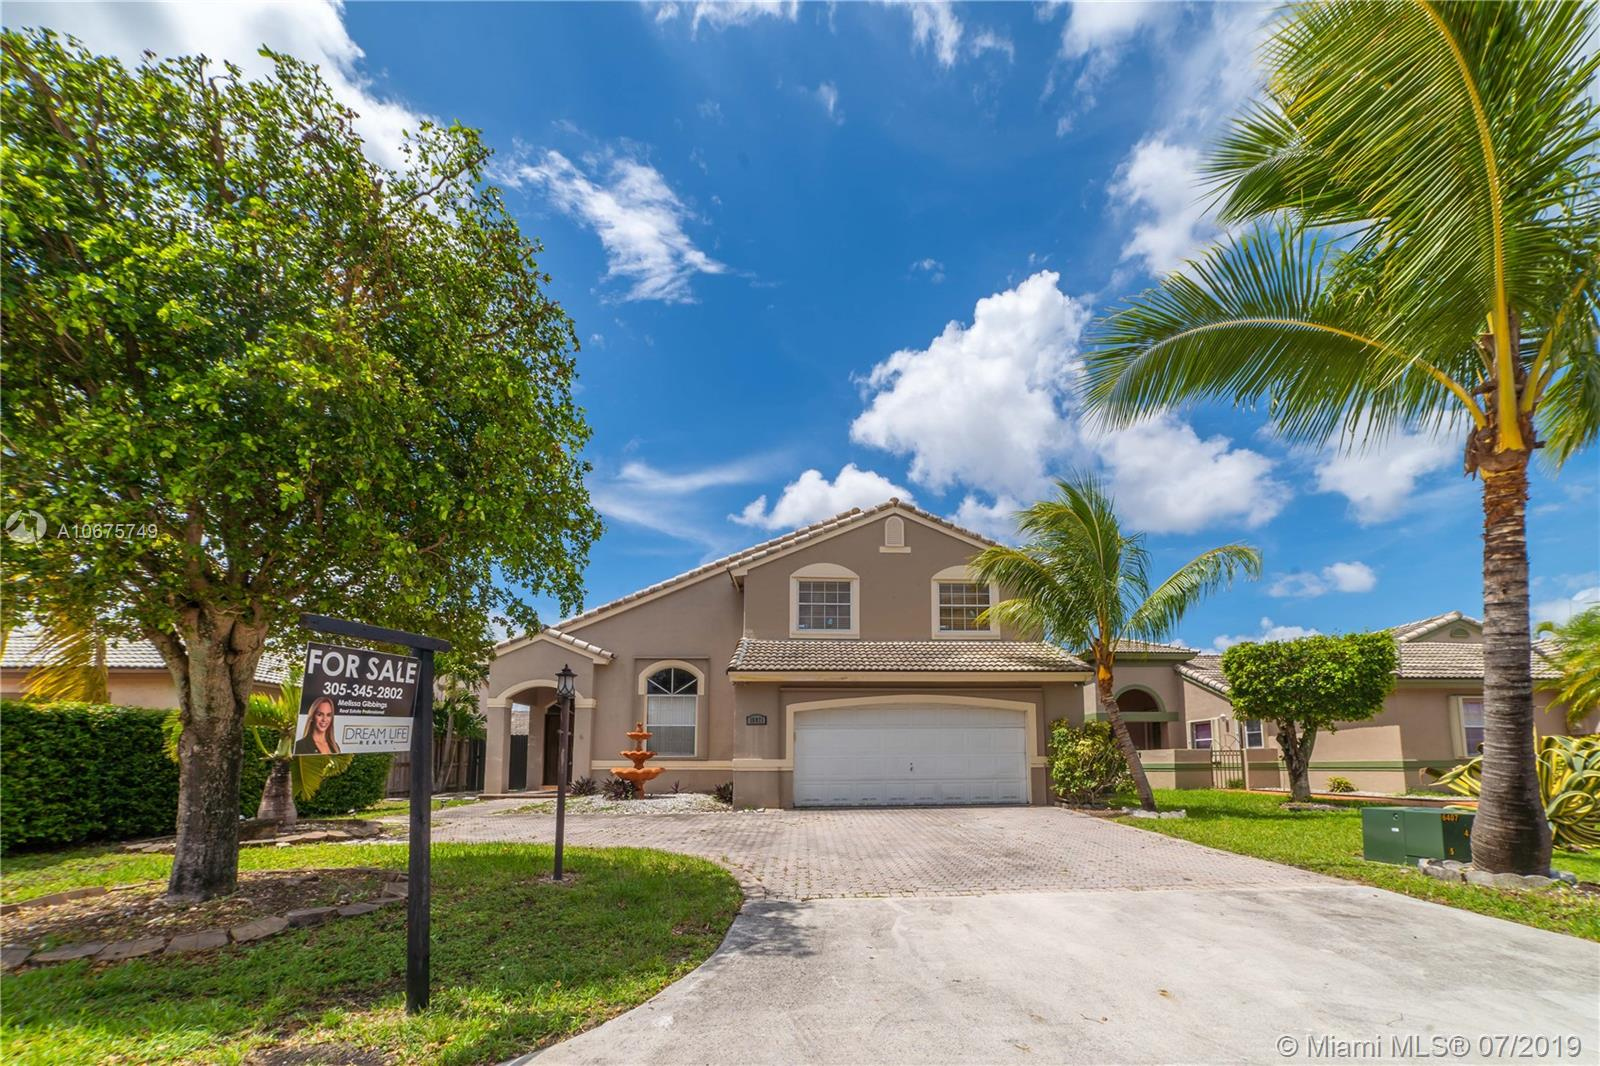 15971 SW 73rd St, Kendall West, Florida